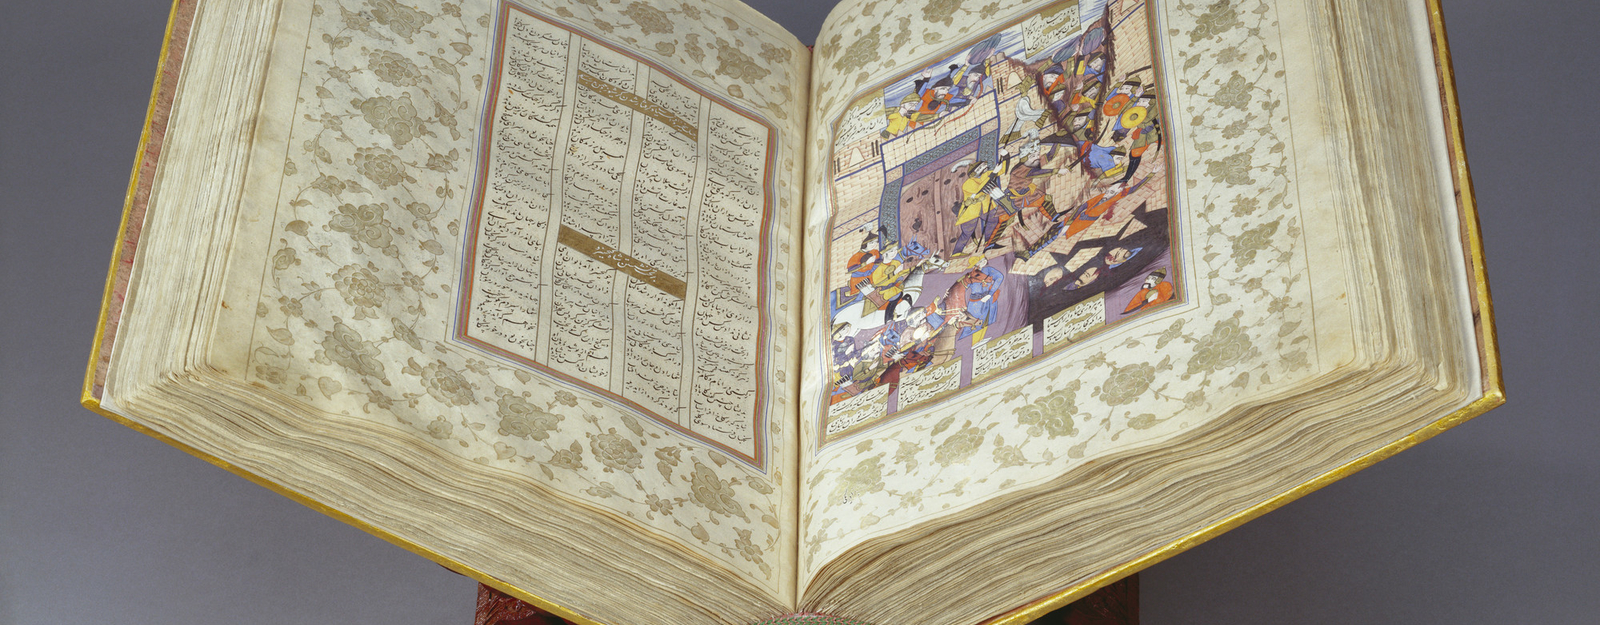 Bound in lacquered painted boards with morocco spine  This is the finer of the two Shahnamahs in the Royal Collection (for the other see RCIN 1005013). It was written out in fine nastaliq caligraphy by Muhammad Hakim al-Husayni, the noted calligrapher.